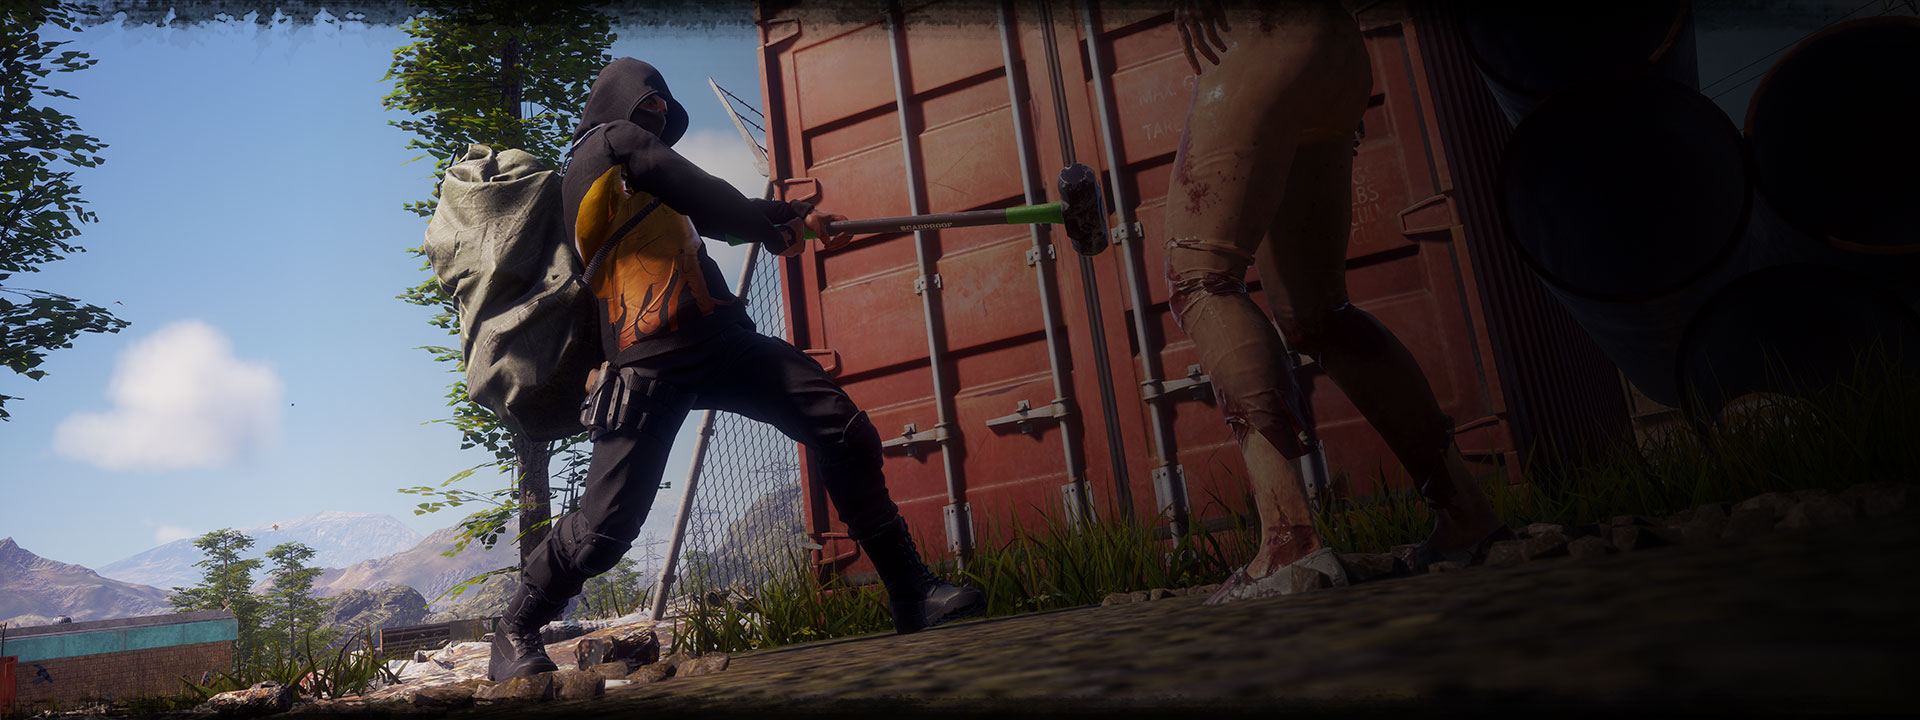 Un personaggio di State of Decay 2 agita una mazza davanti a uno zombie